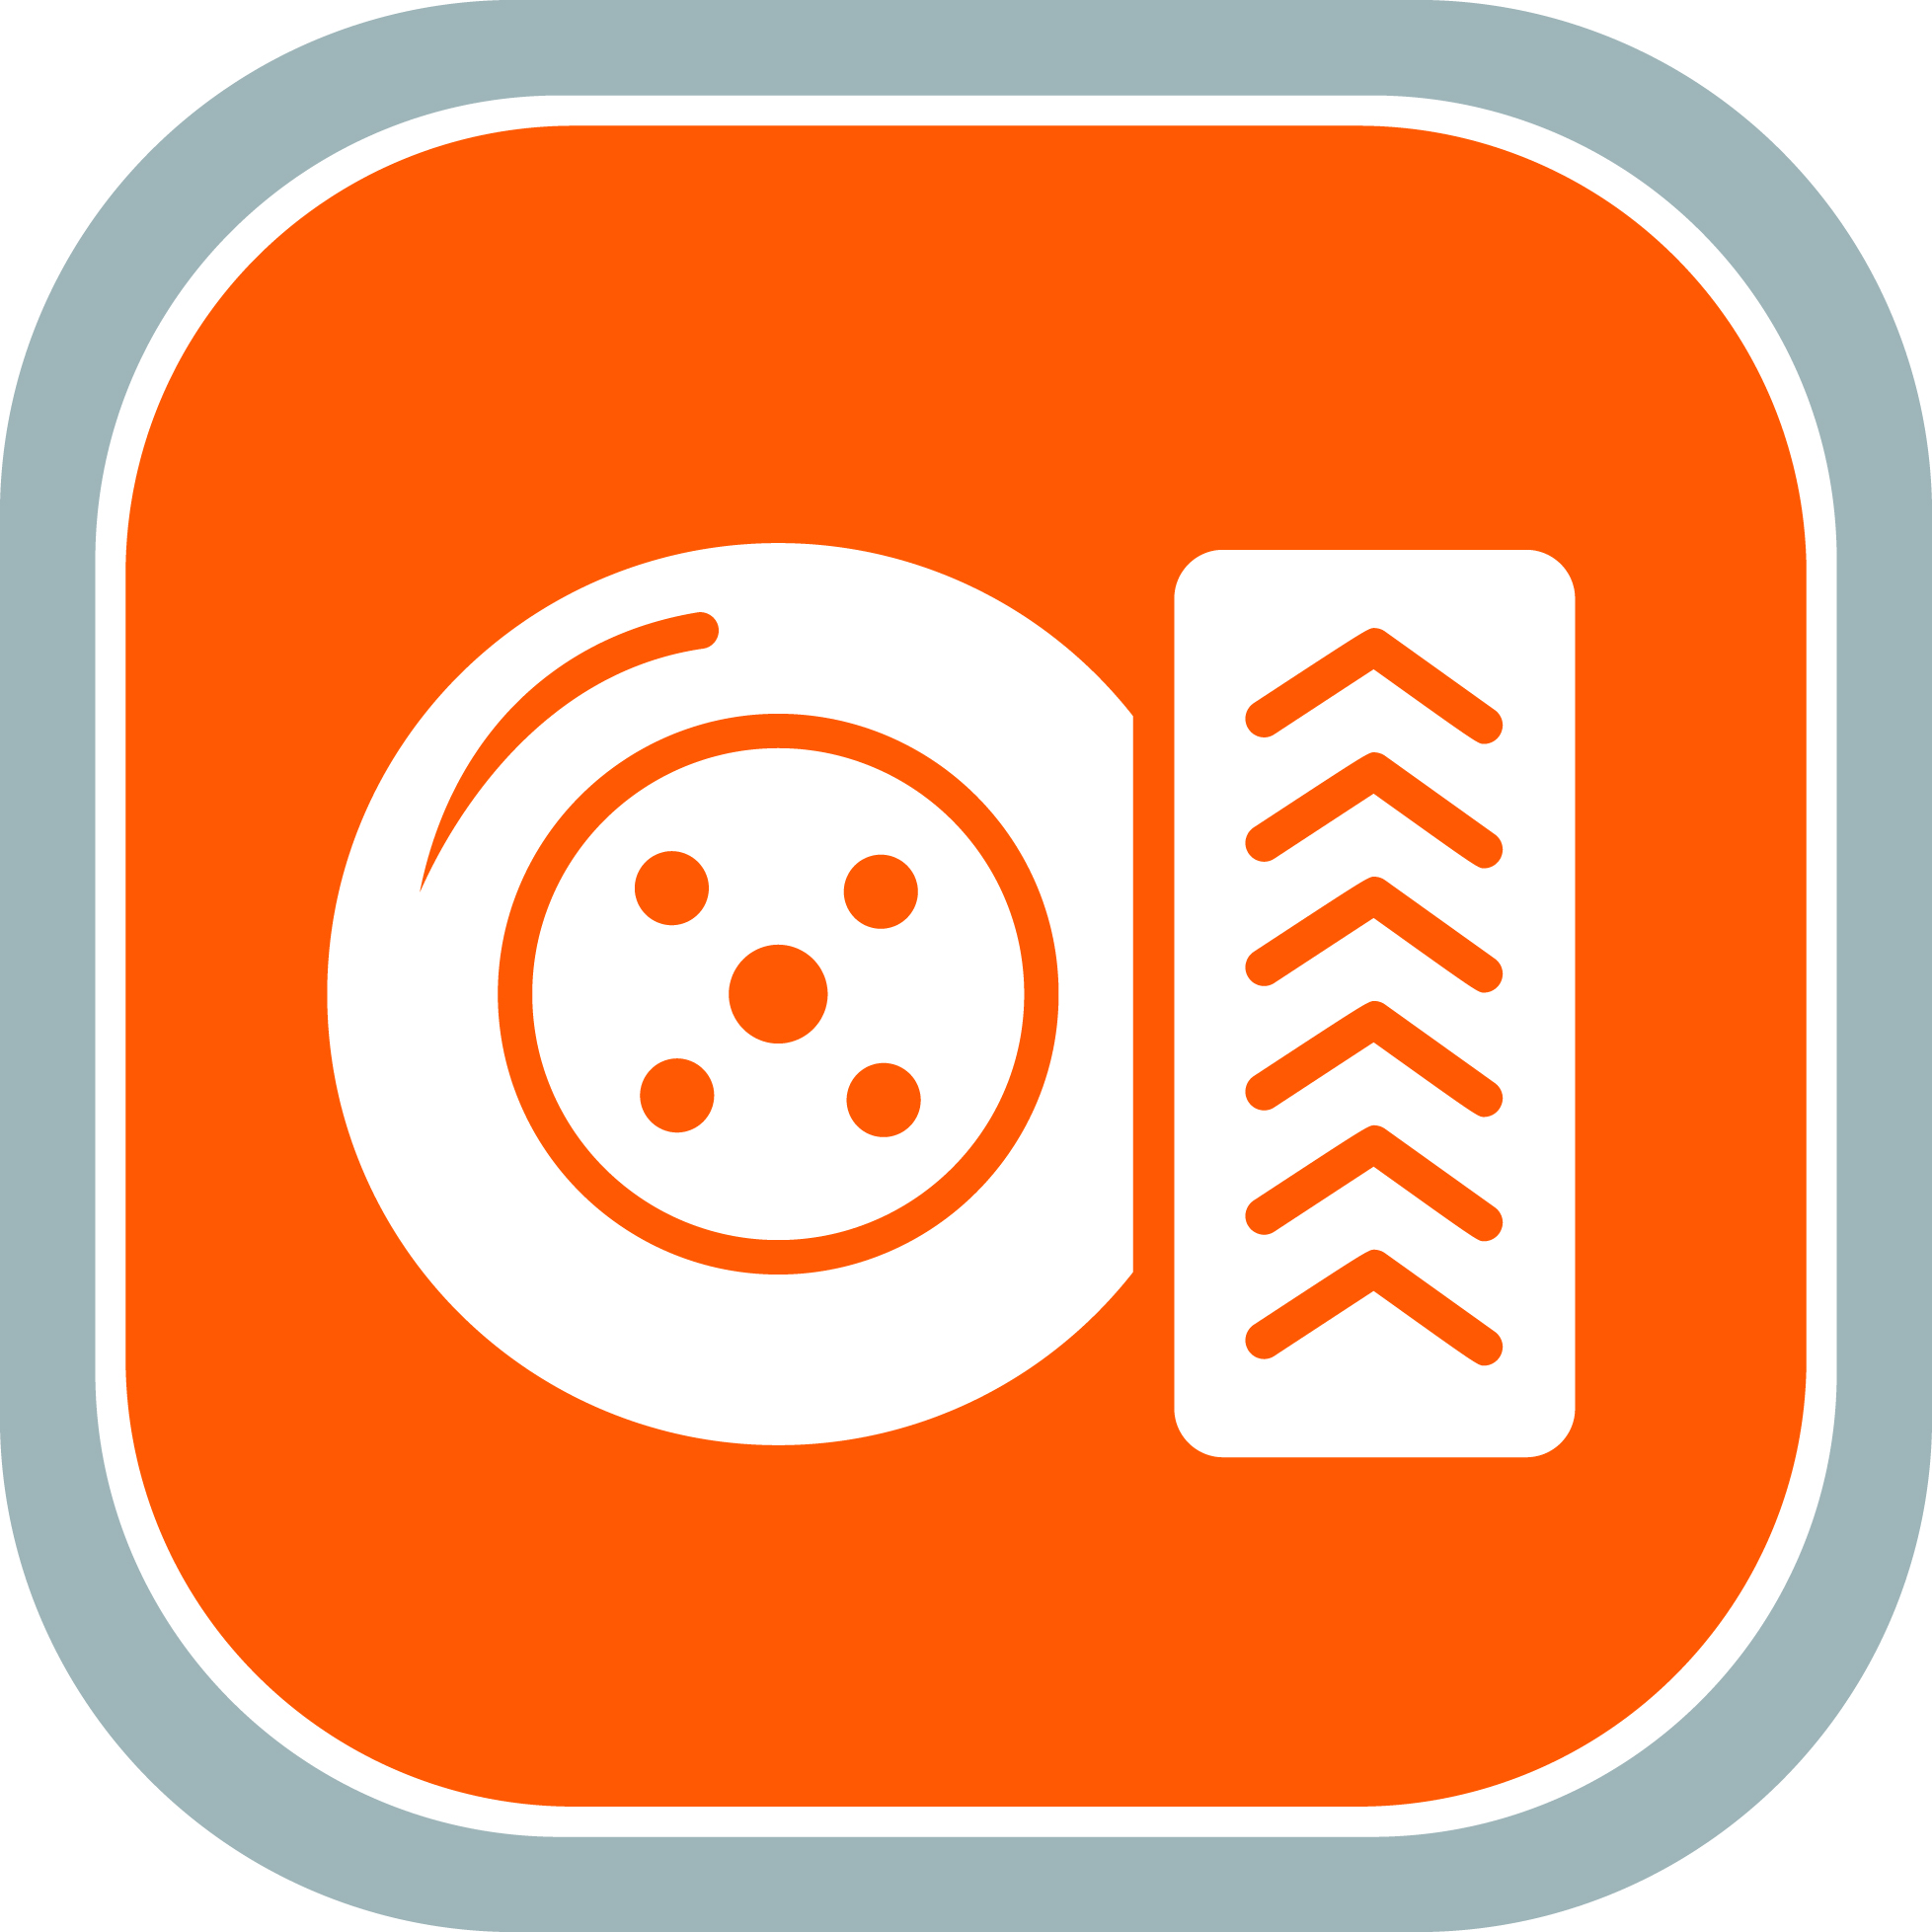 sx07631_Icons_Tire-Mangement_simp